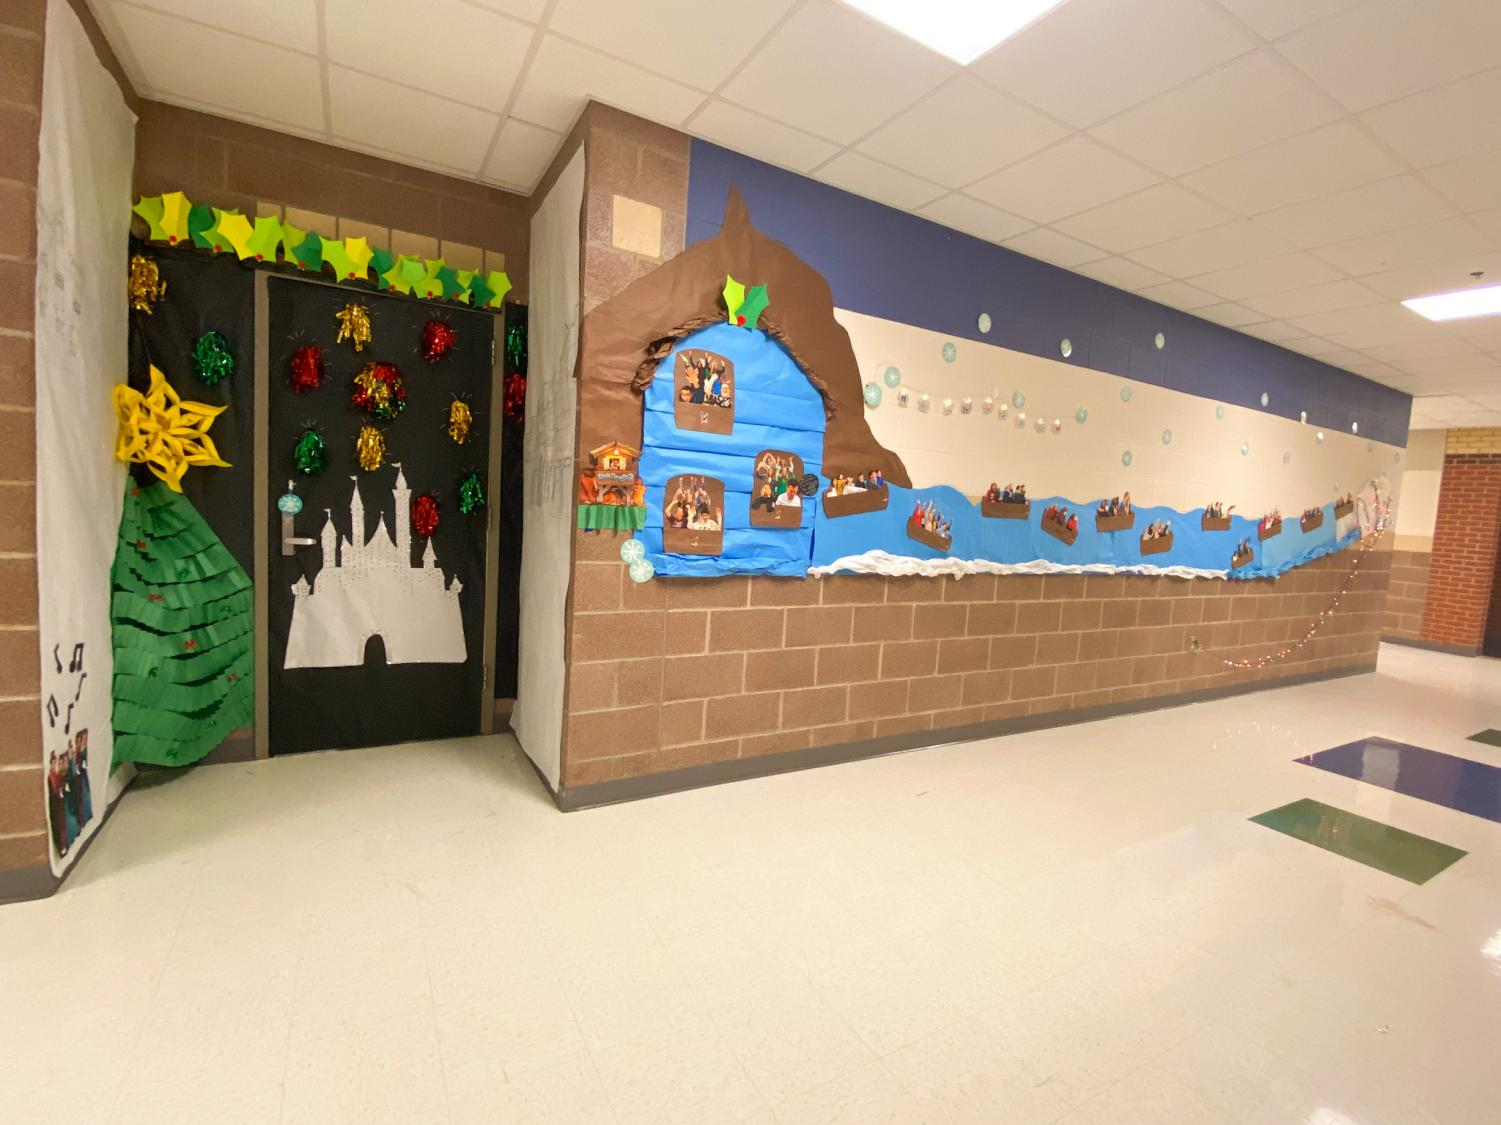 Science teacher Sadaf Syed's door is based off of the Disney ride Splash Mountain. Syed has put pictures of many of her students on the ride.